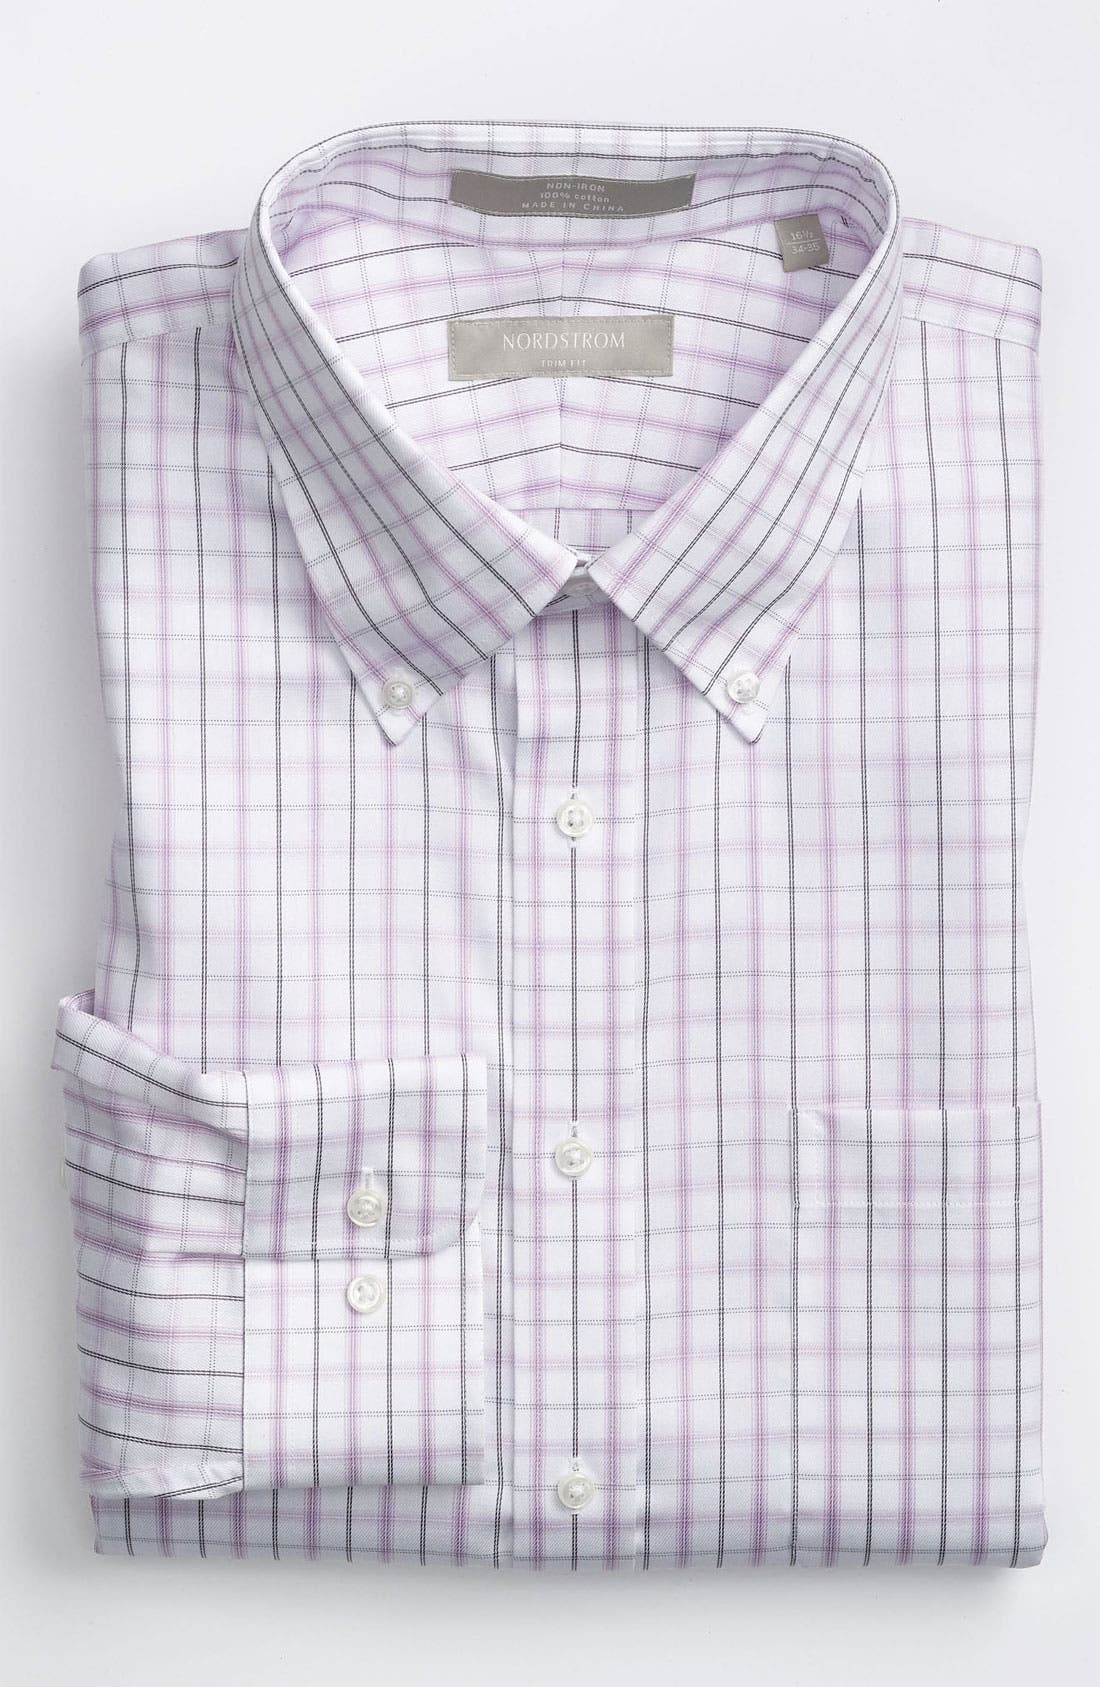 Main Image - Nordstrom Trim Fit Non-Iron Dress Shirt (Online Exclusive)